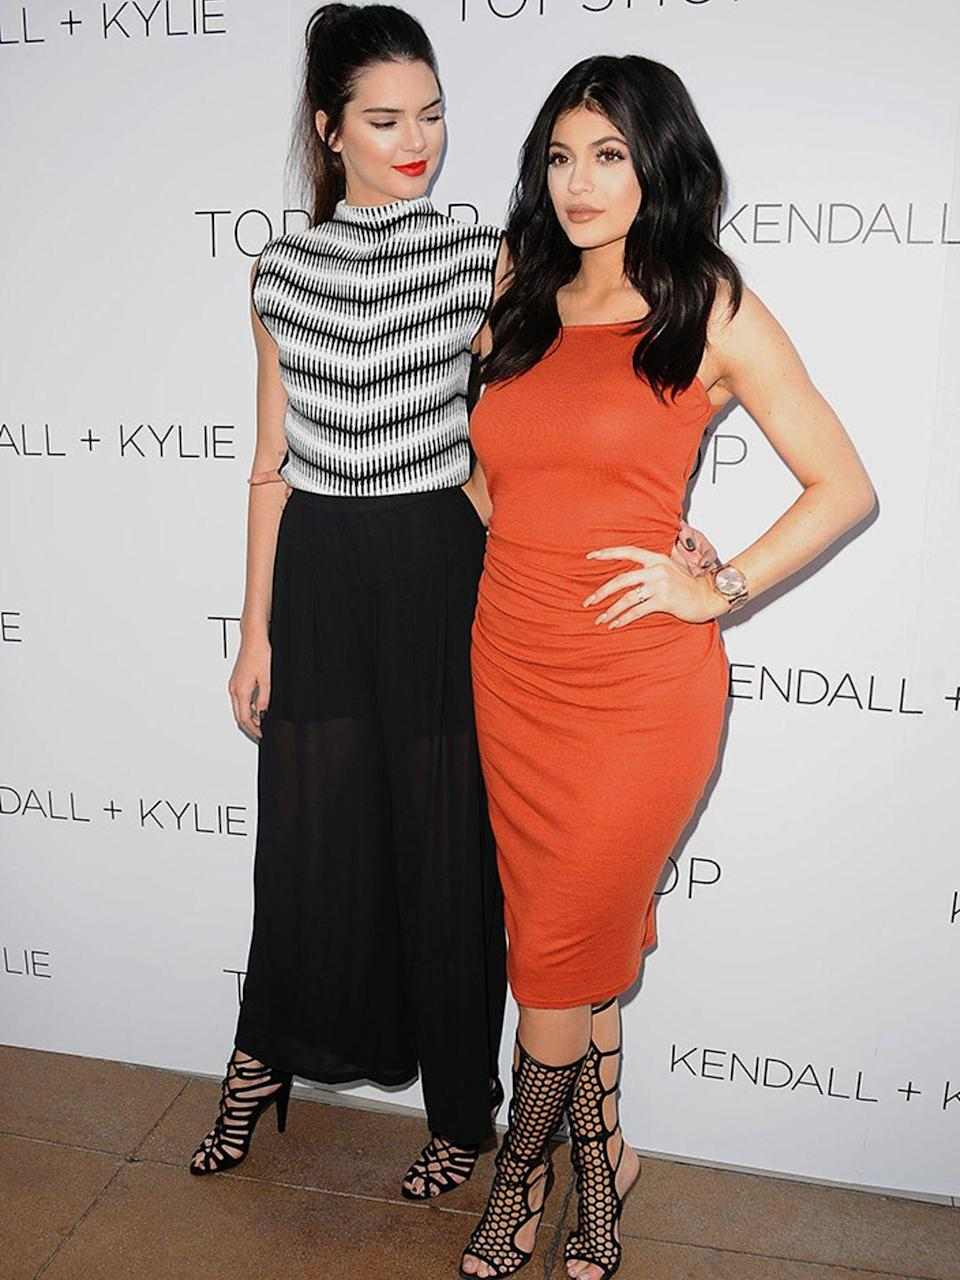 <p>Kendall and Kylie Jenner at the Kendal + Kylie Topshop launch in Los Angeles, June 2015.</p>